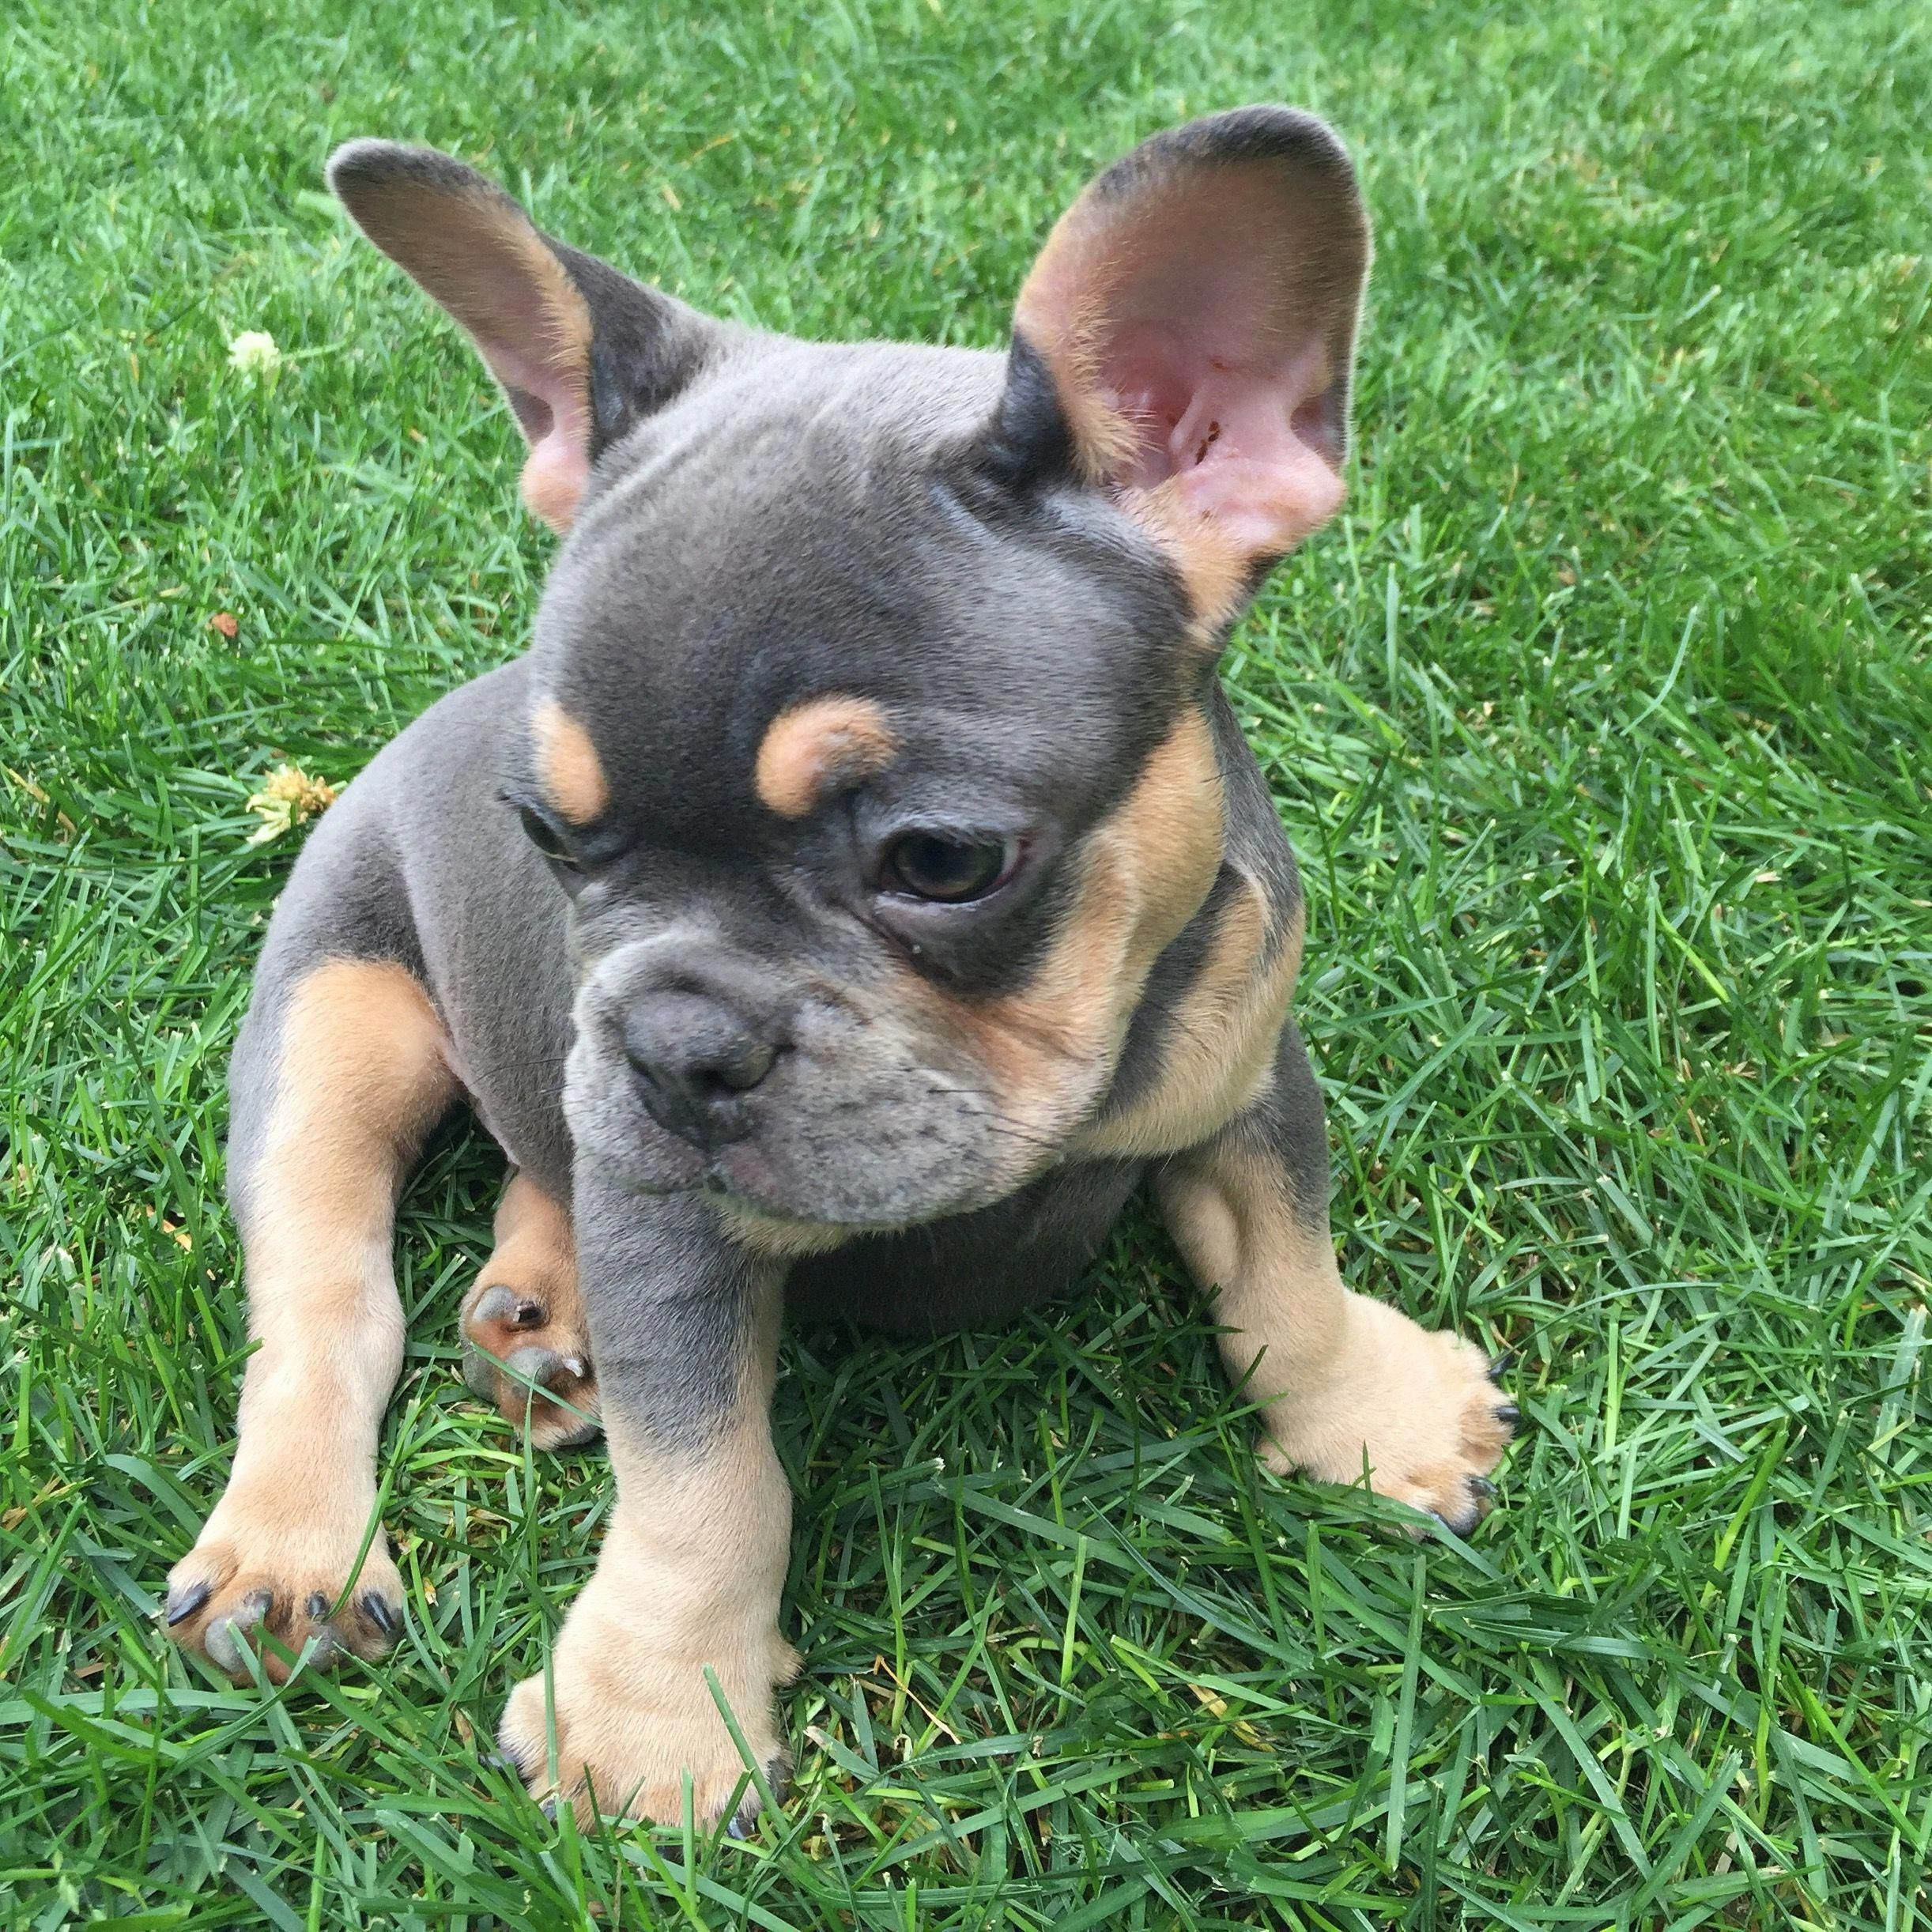 Our New Blue And Tan French Bulldog Puppy Martini She S So Cute